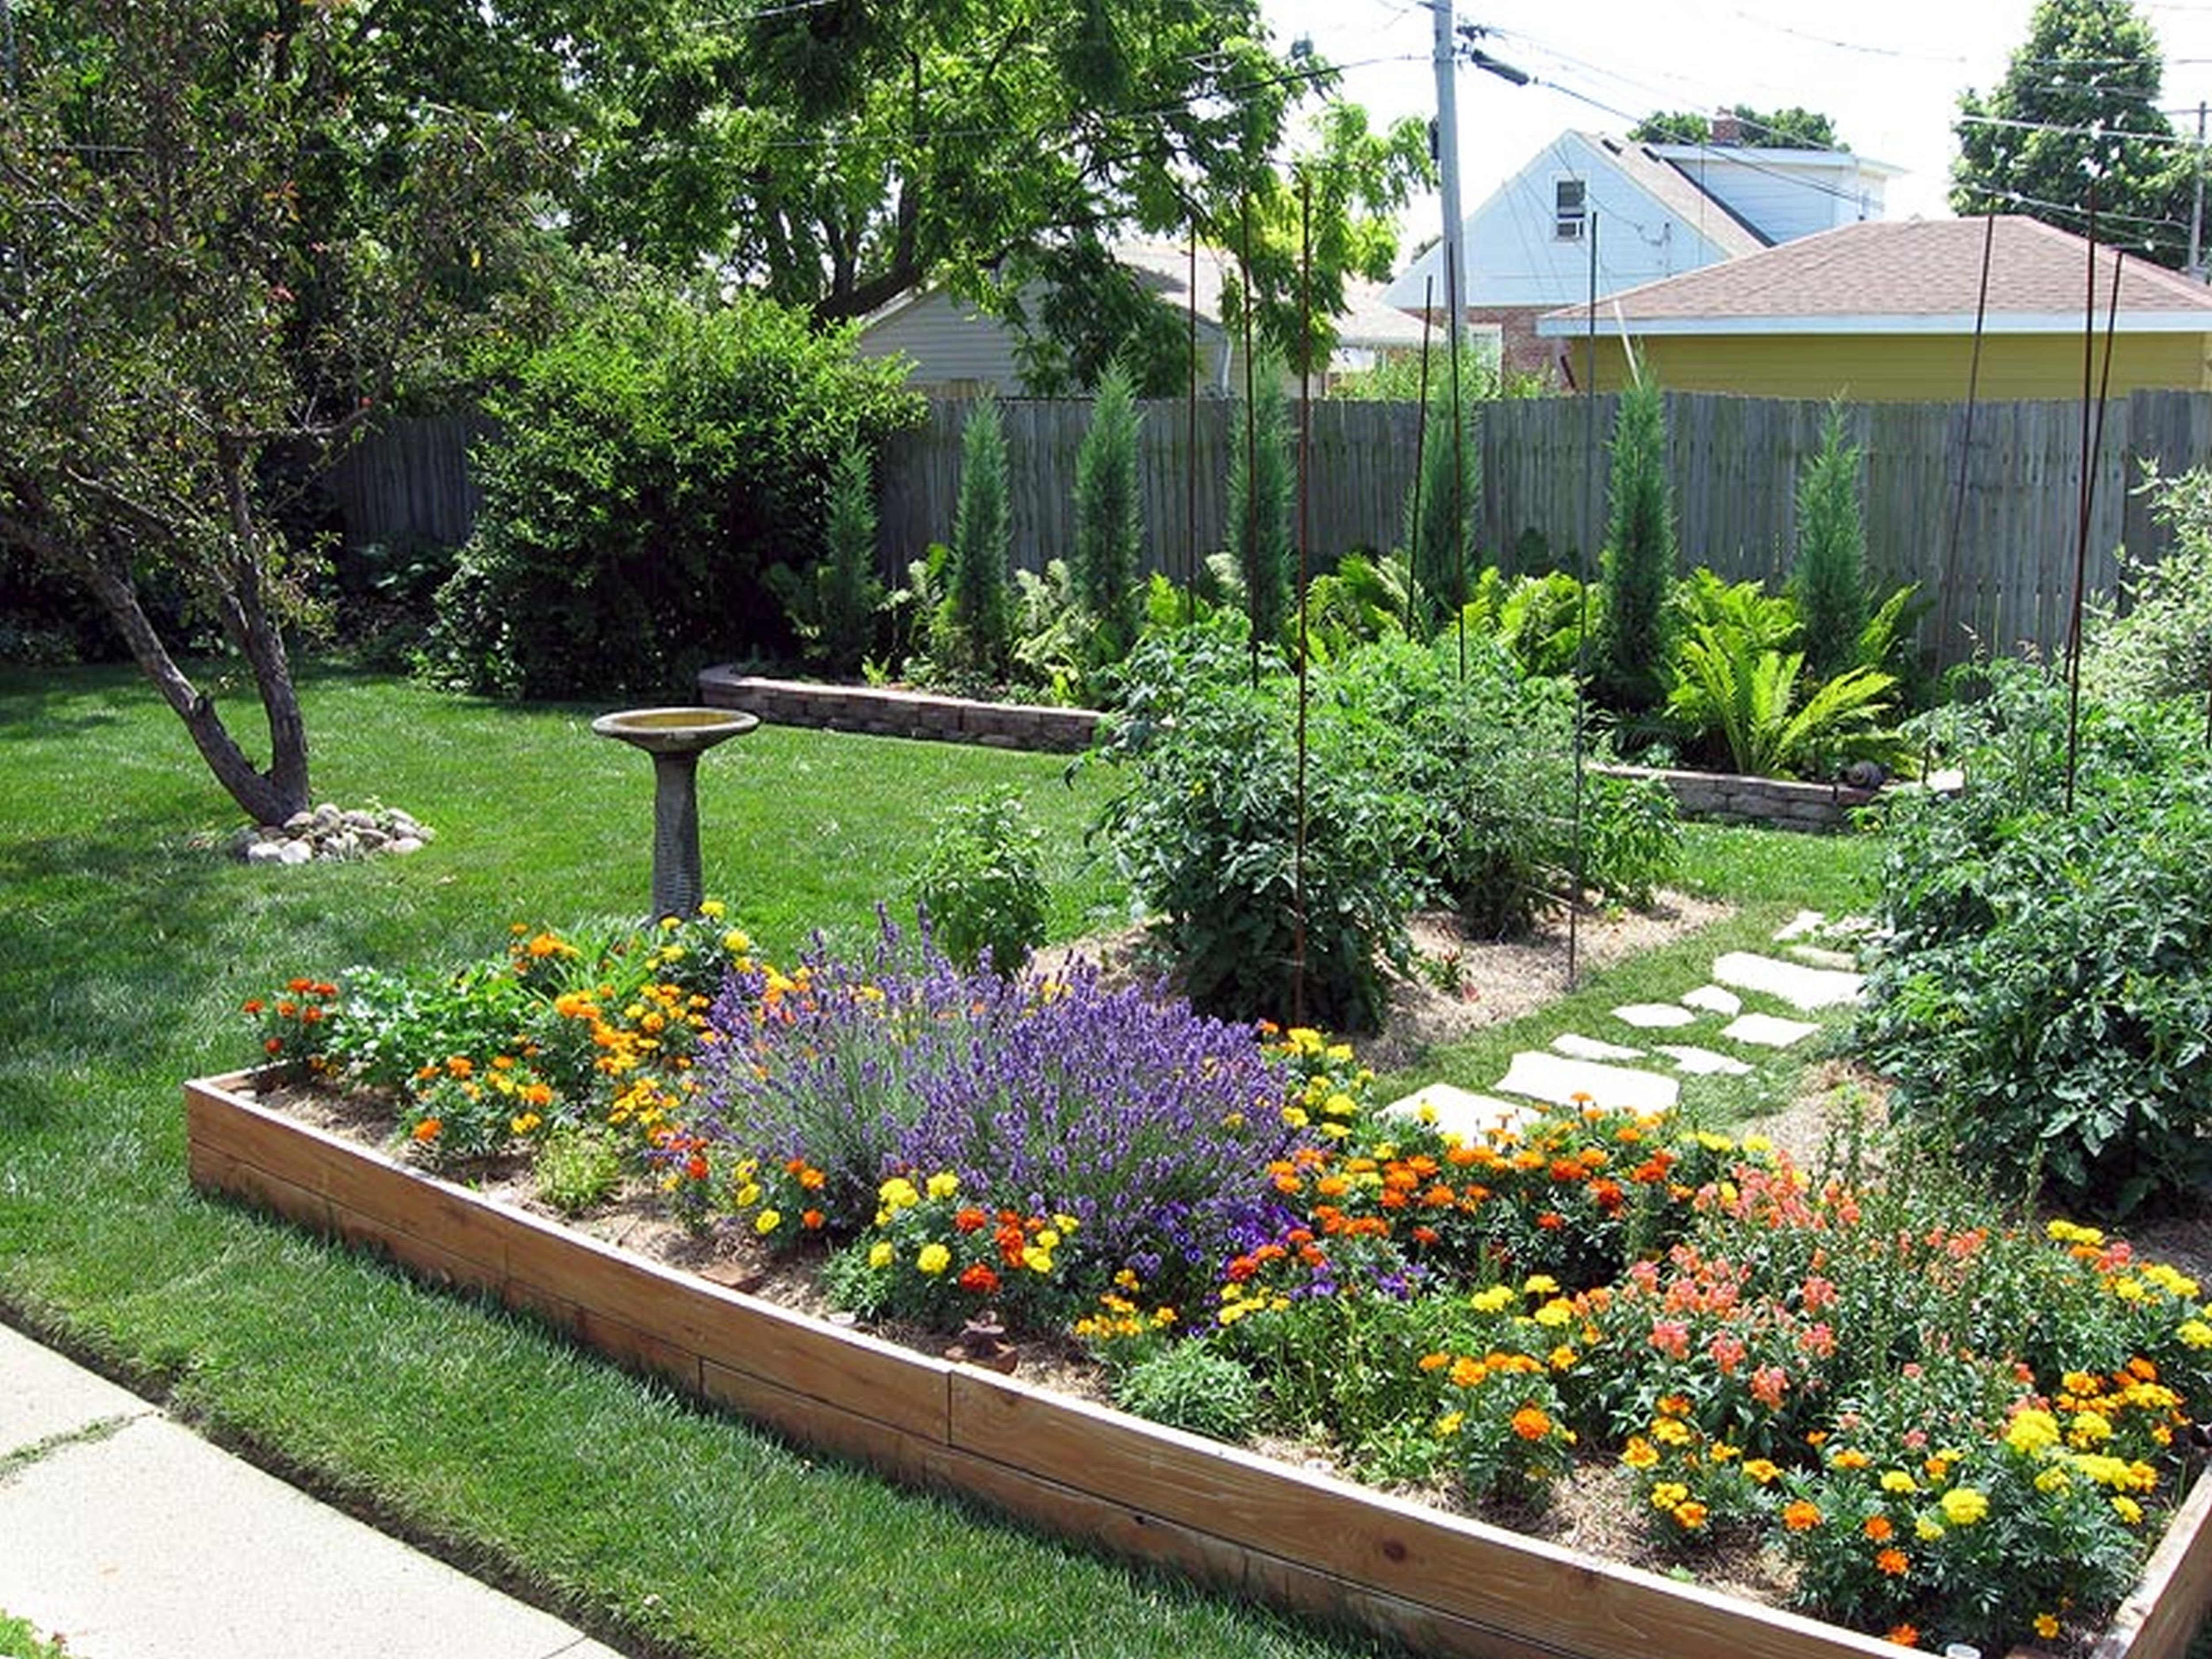 The Trendiest Spring Backyard Design Ideas for Your Home ... on Small Outdoor Yard Ideas id=40352